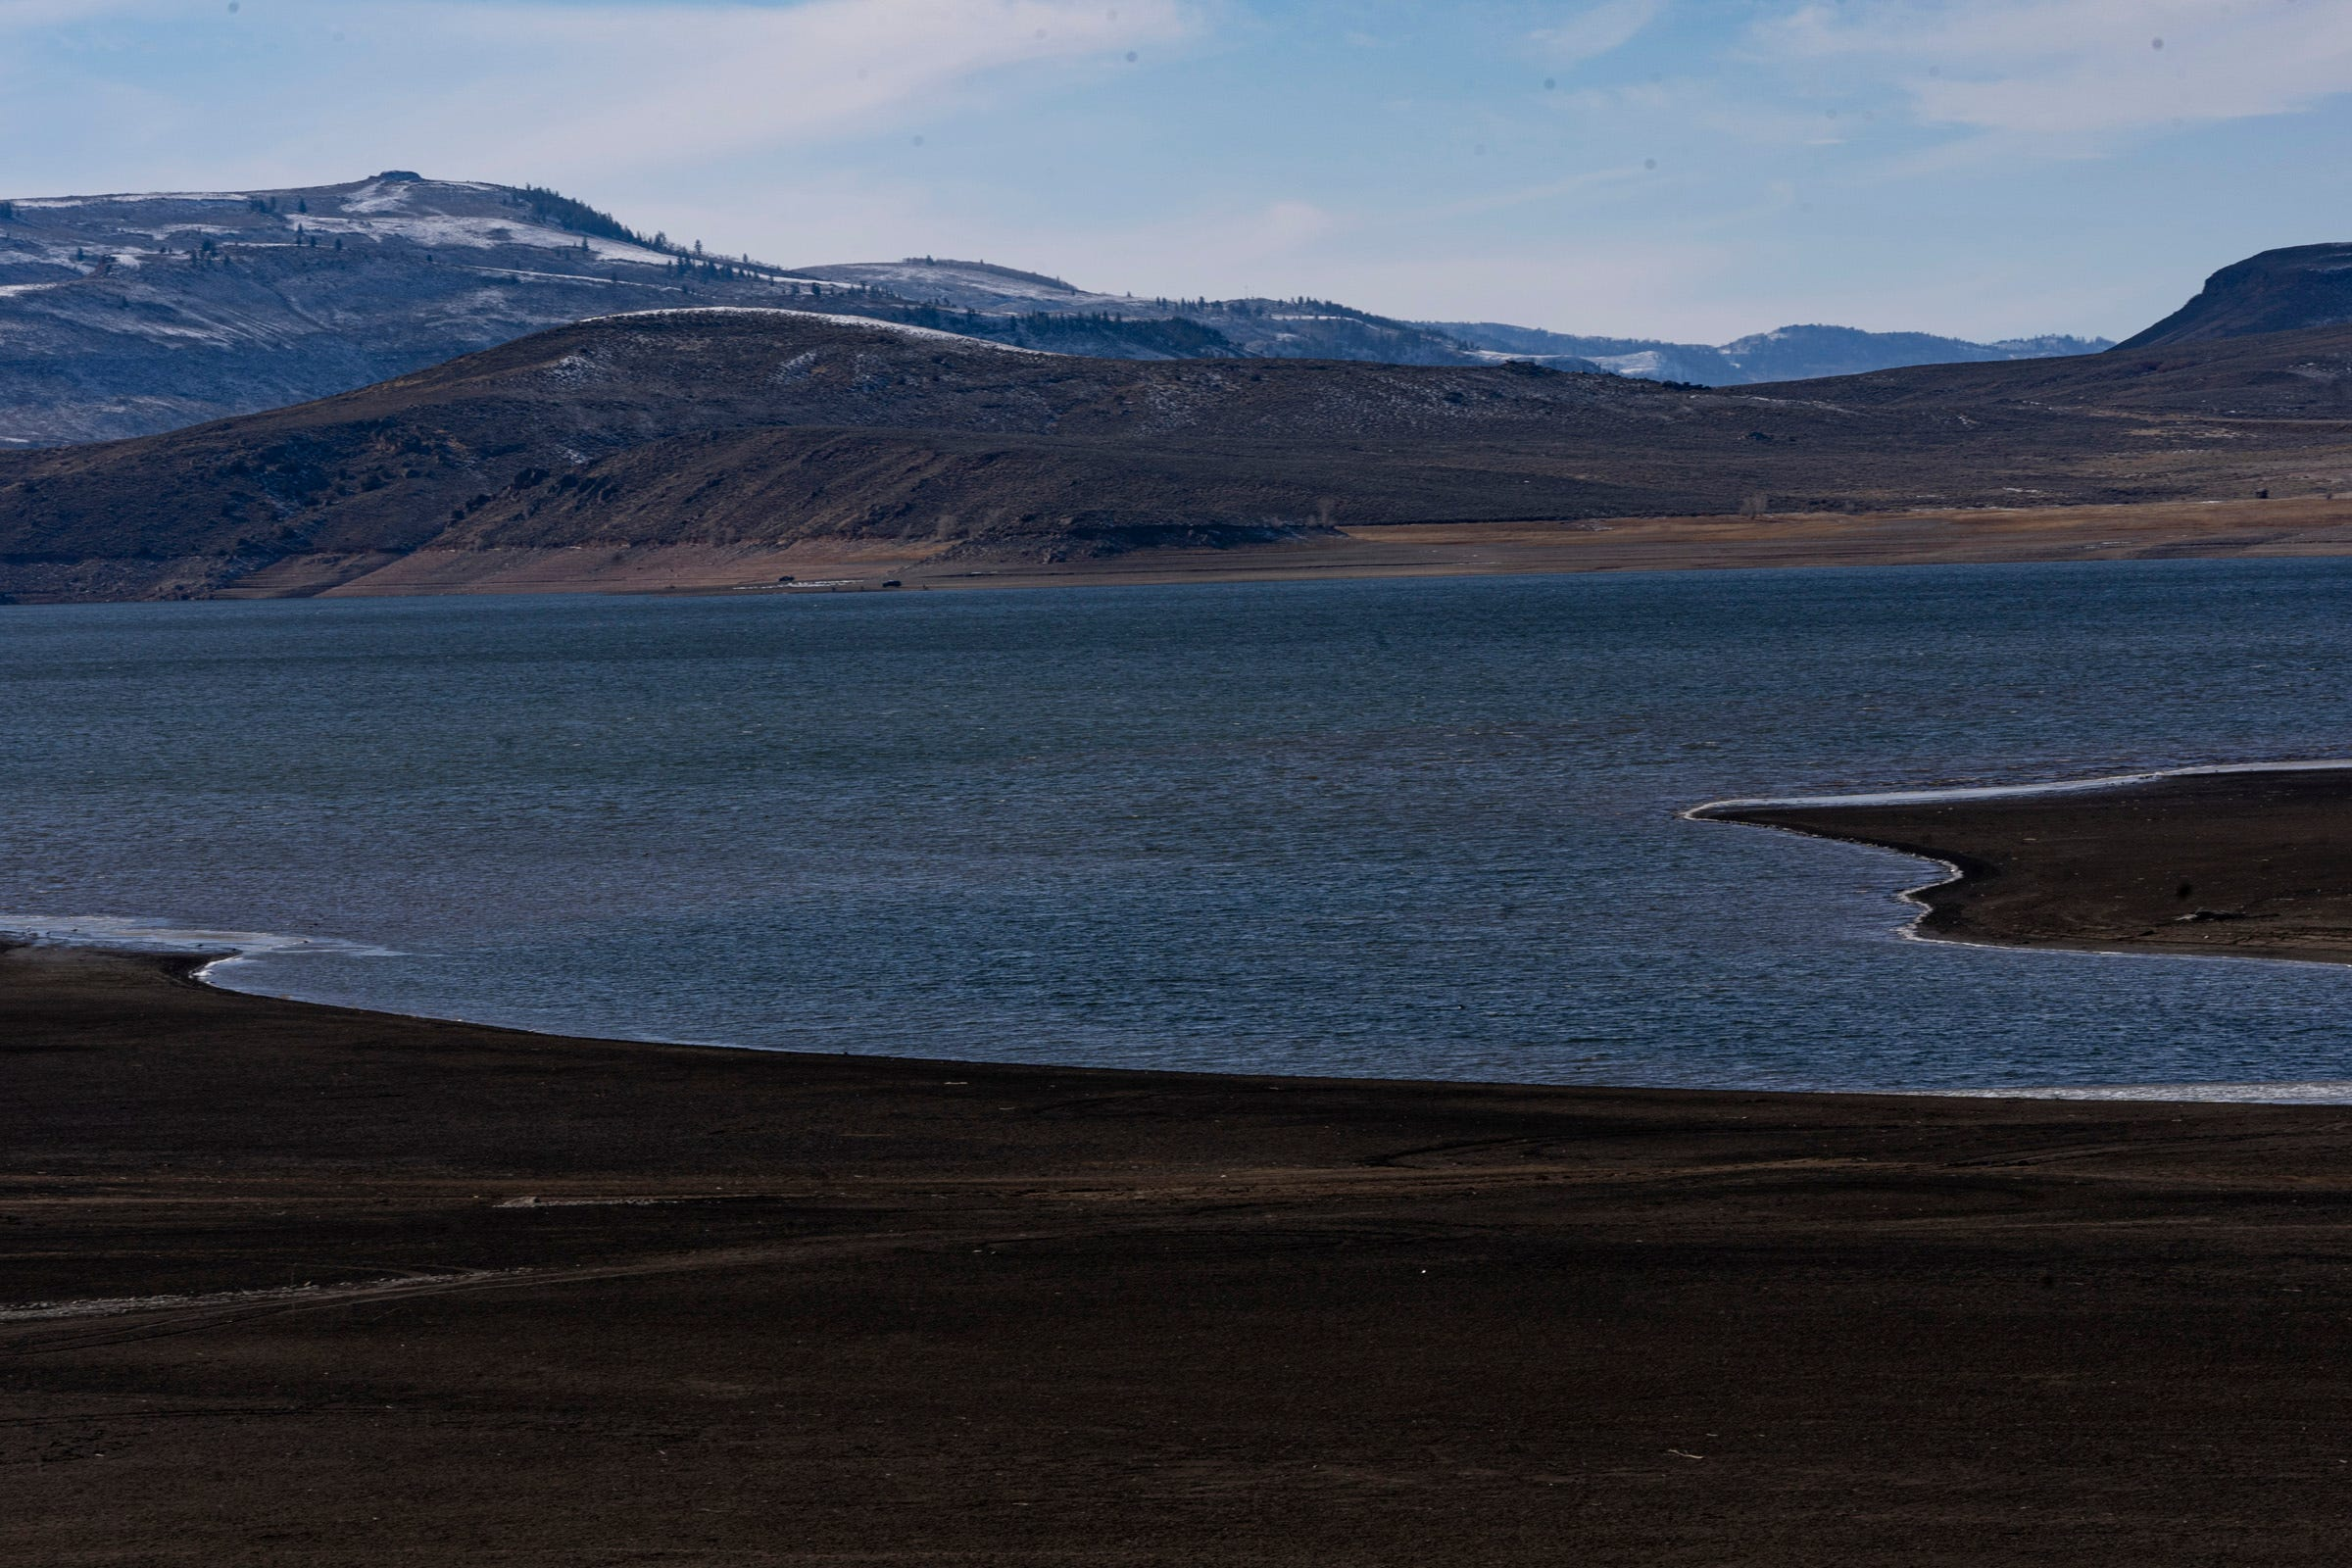 Blue Mesa Reservoir holds water from the Gunnison River, a tributary of the Colorado River, and is now 48% full.